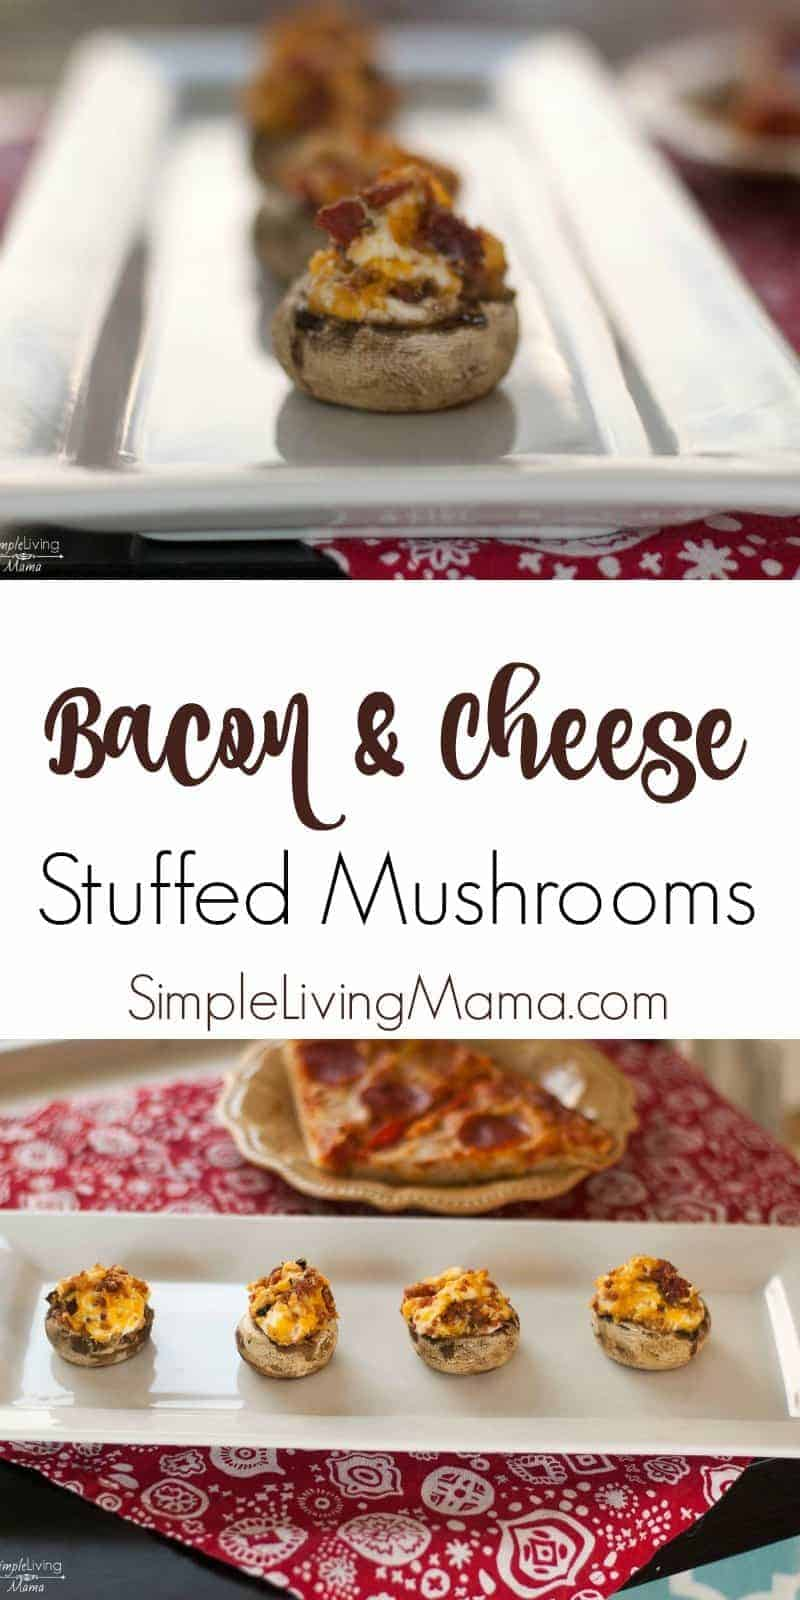 These bacon and cheese stuffed mushrooms are made with cream cheese, other cheeses and bacon for the perfect appetizer!